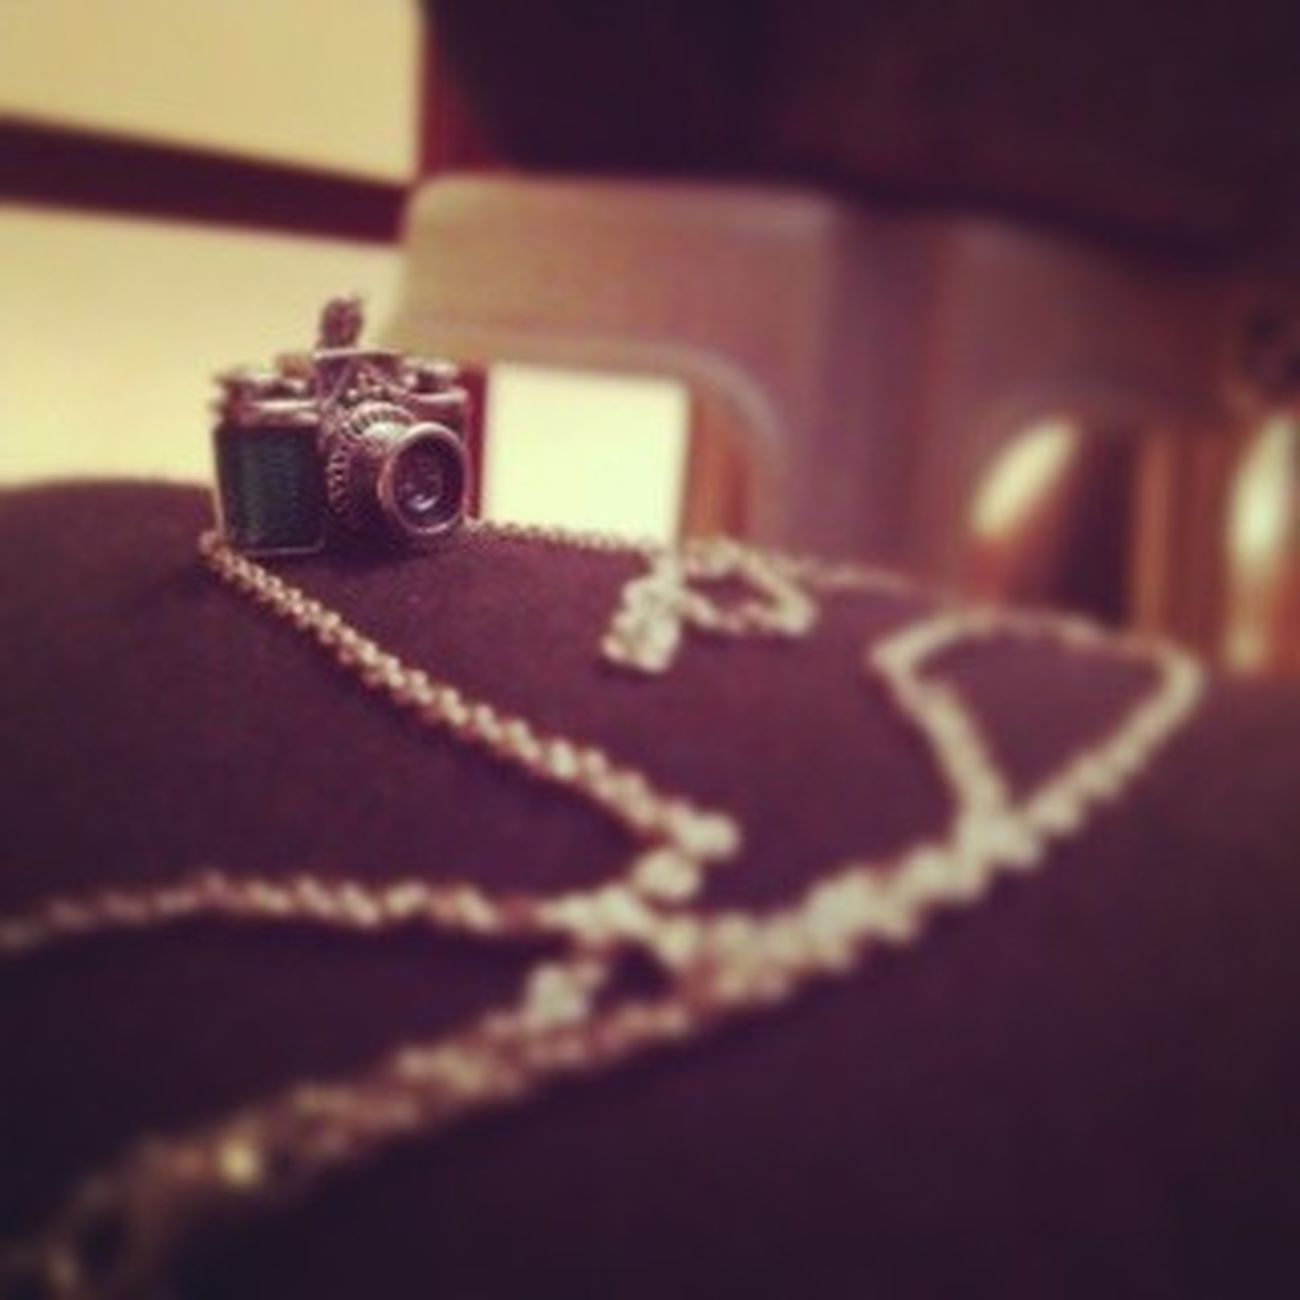 Camera Lil Jewellery LilJewellery BabyCamera Baby Camera Photo Photograph LilMomentsOfHappiness Chain